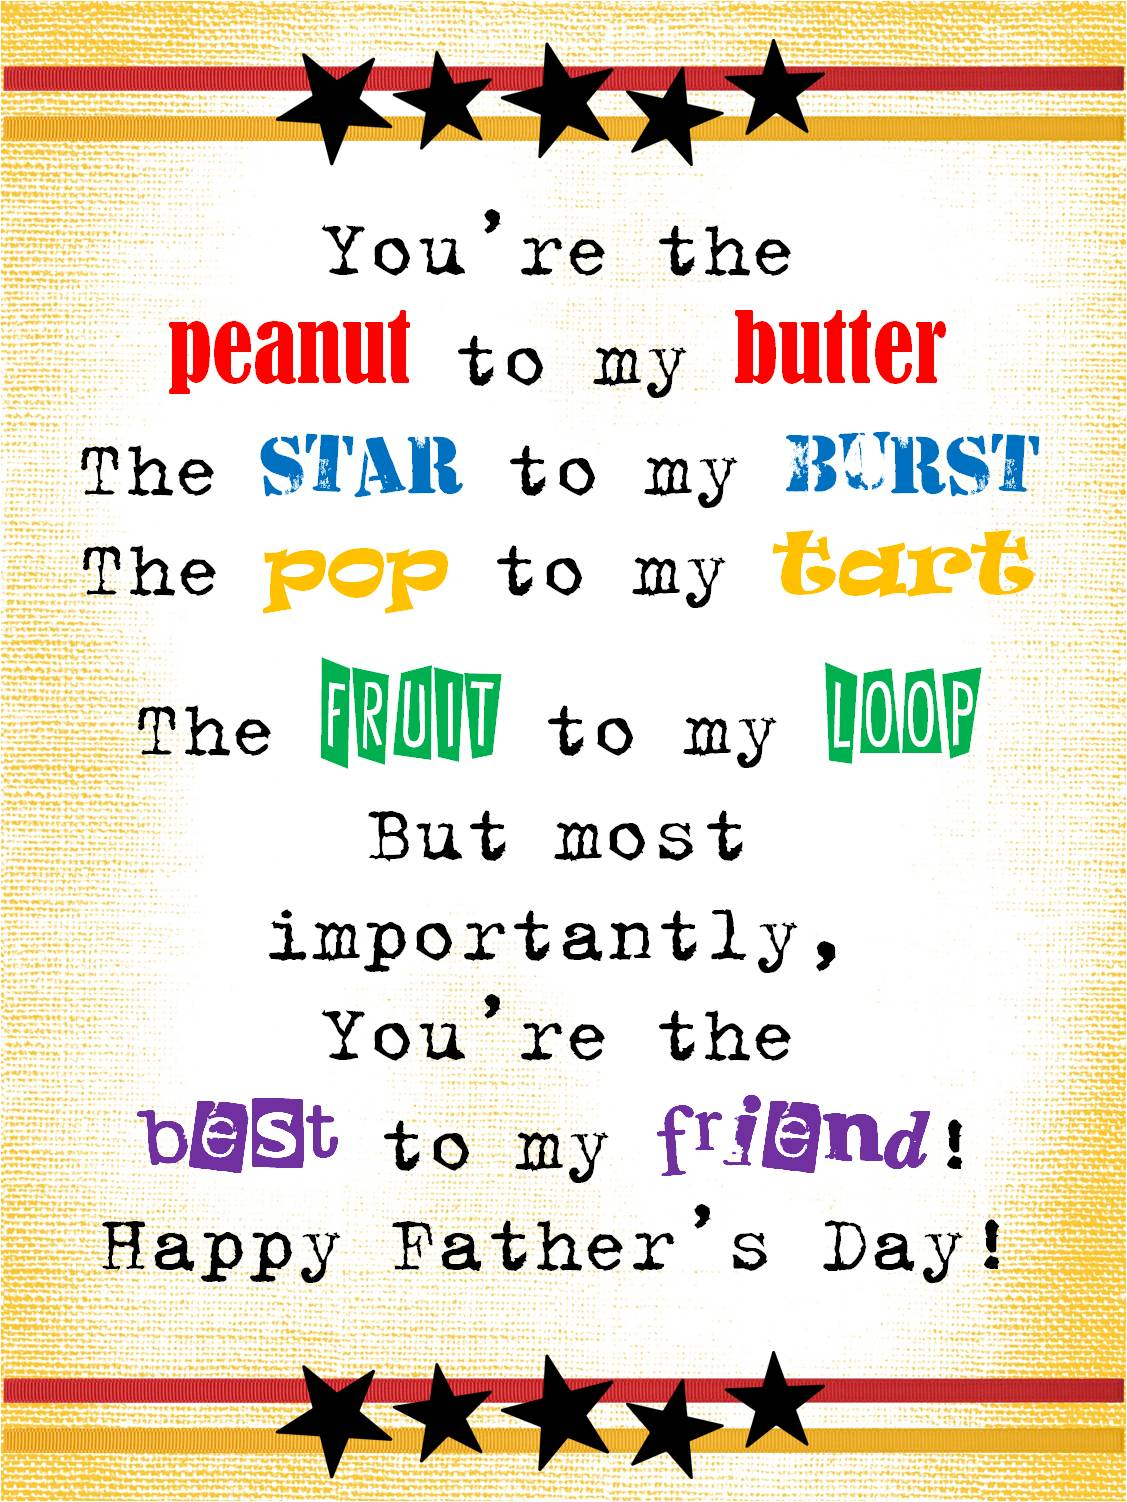 Strong Armor: Father's Day Poem - You're the peanut to my ...